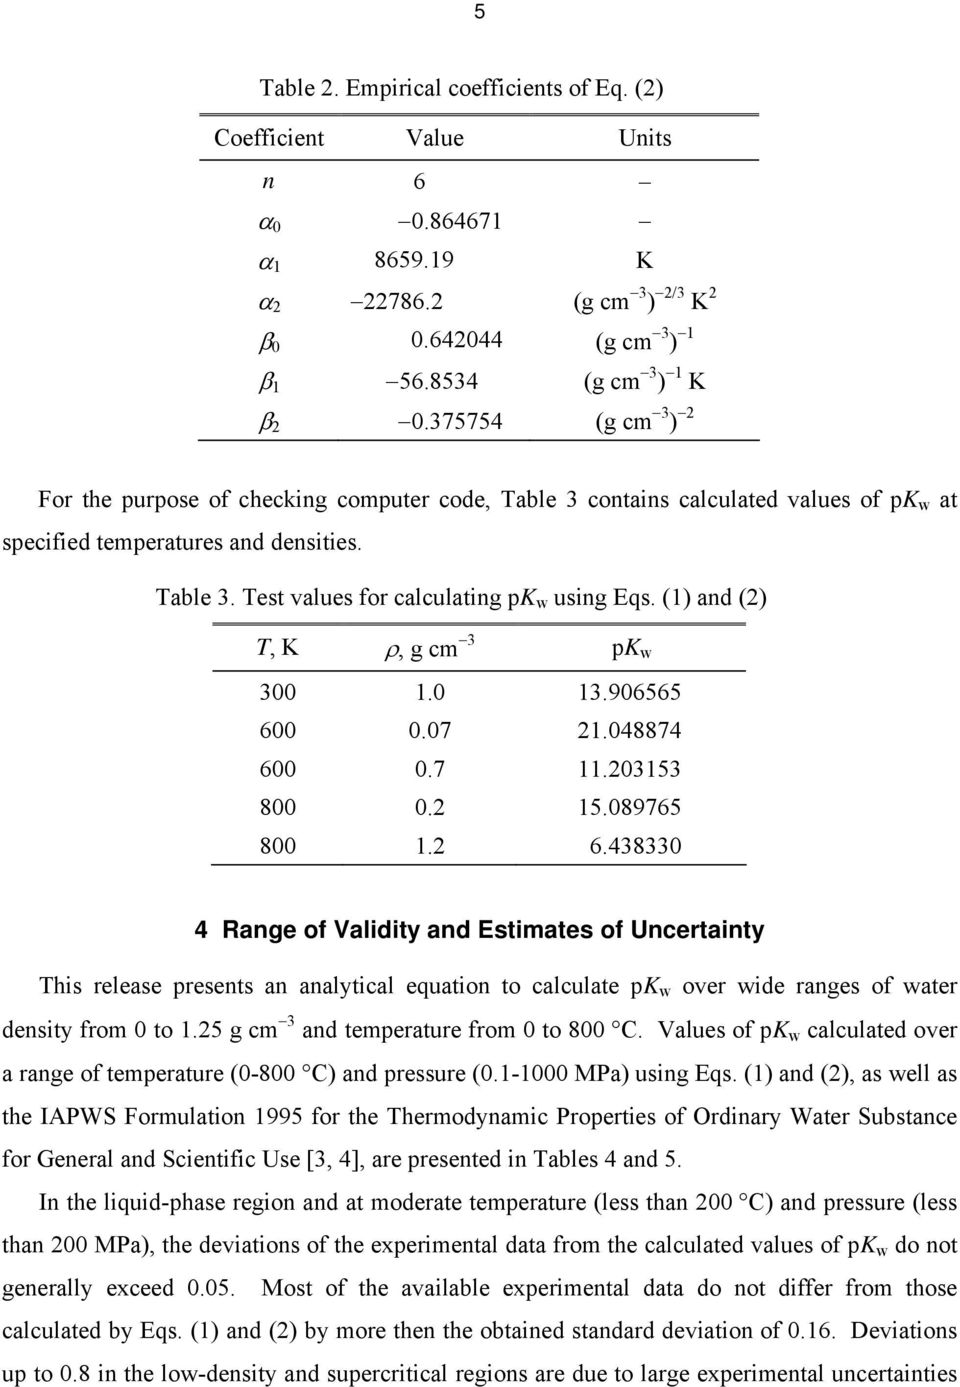 () nd () T, K ρ, g cm 3 pk 3. 3.96565 6.7.48874 6.7.353 8. 5.89765 8. 6.43833 4 Rnge of Vlidity nd Estimtes of Uncertinty This relese presents n nlyticl eqution to clculte pk over ide rnges of ter density from to.